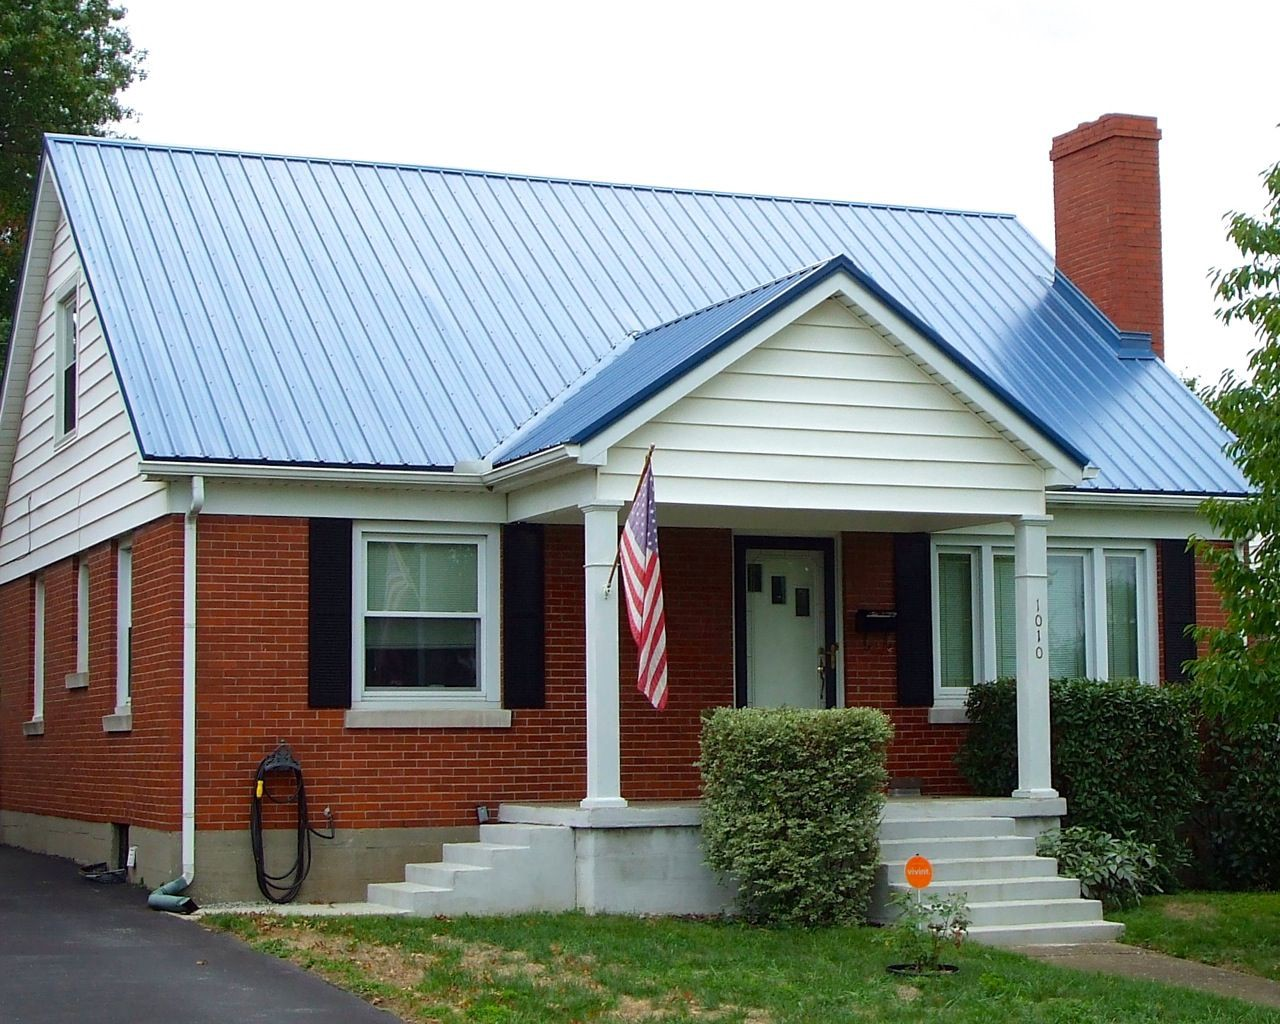 Types Of Roofing Sheets Different Types Of Roof Sheets Come By Akansha Sharma Medium